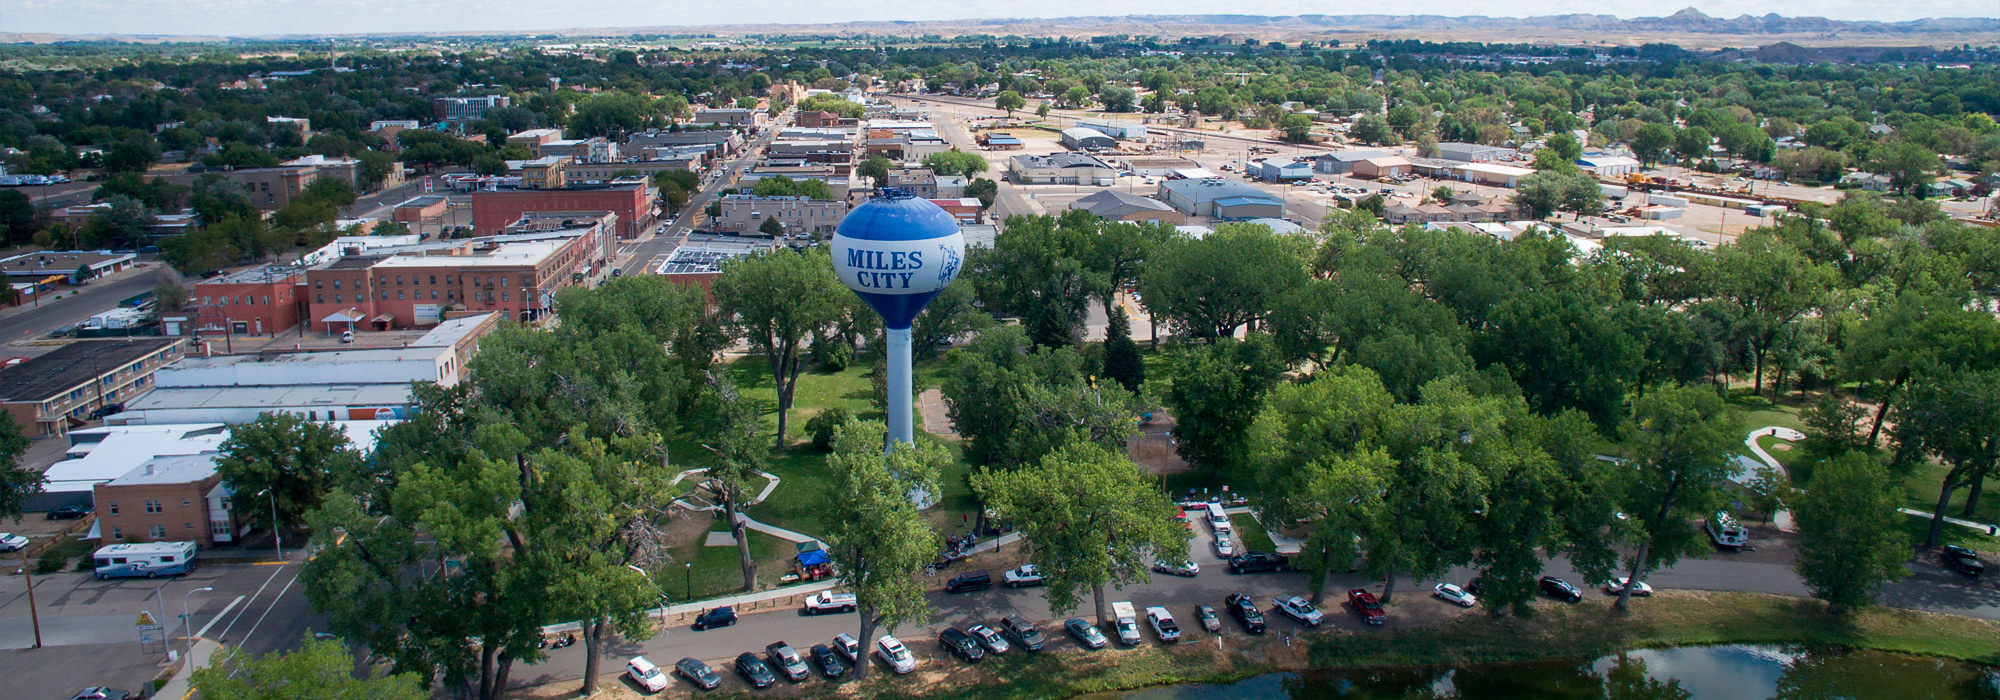 An aerial photo of Miles City, Montana